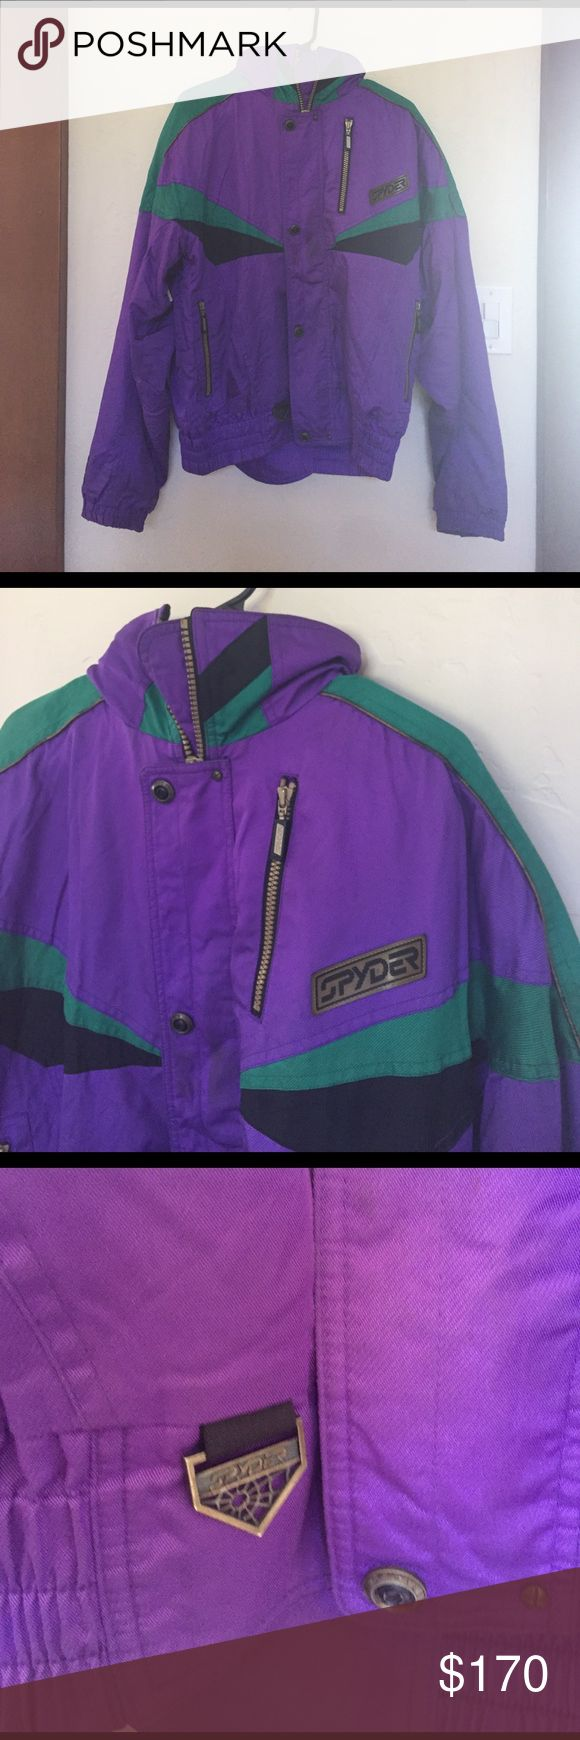 Vintage Spyder Men's Ski Jacket Awesome vintage spyder ski/snow jacket with ceramic insulation (thinsulate). Great condition--no holes or rips and all the zippers work. Small stains on the front and collar (pictured) but the purple color makes it really hard to see them. Also they might be removed with a good wash, this jacket has been sitting in a plastic box for years. Jacket can be worn w/ or w/o a hood (shown in pictures). Amazing condition for a vintage jacket Spyder Jackets & Coats Ski…